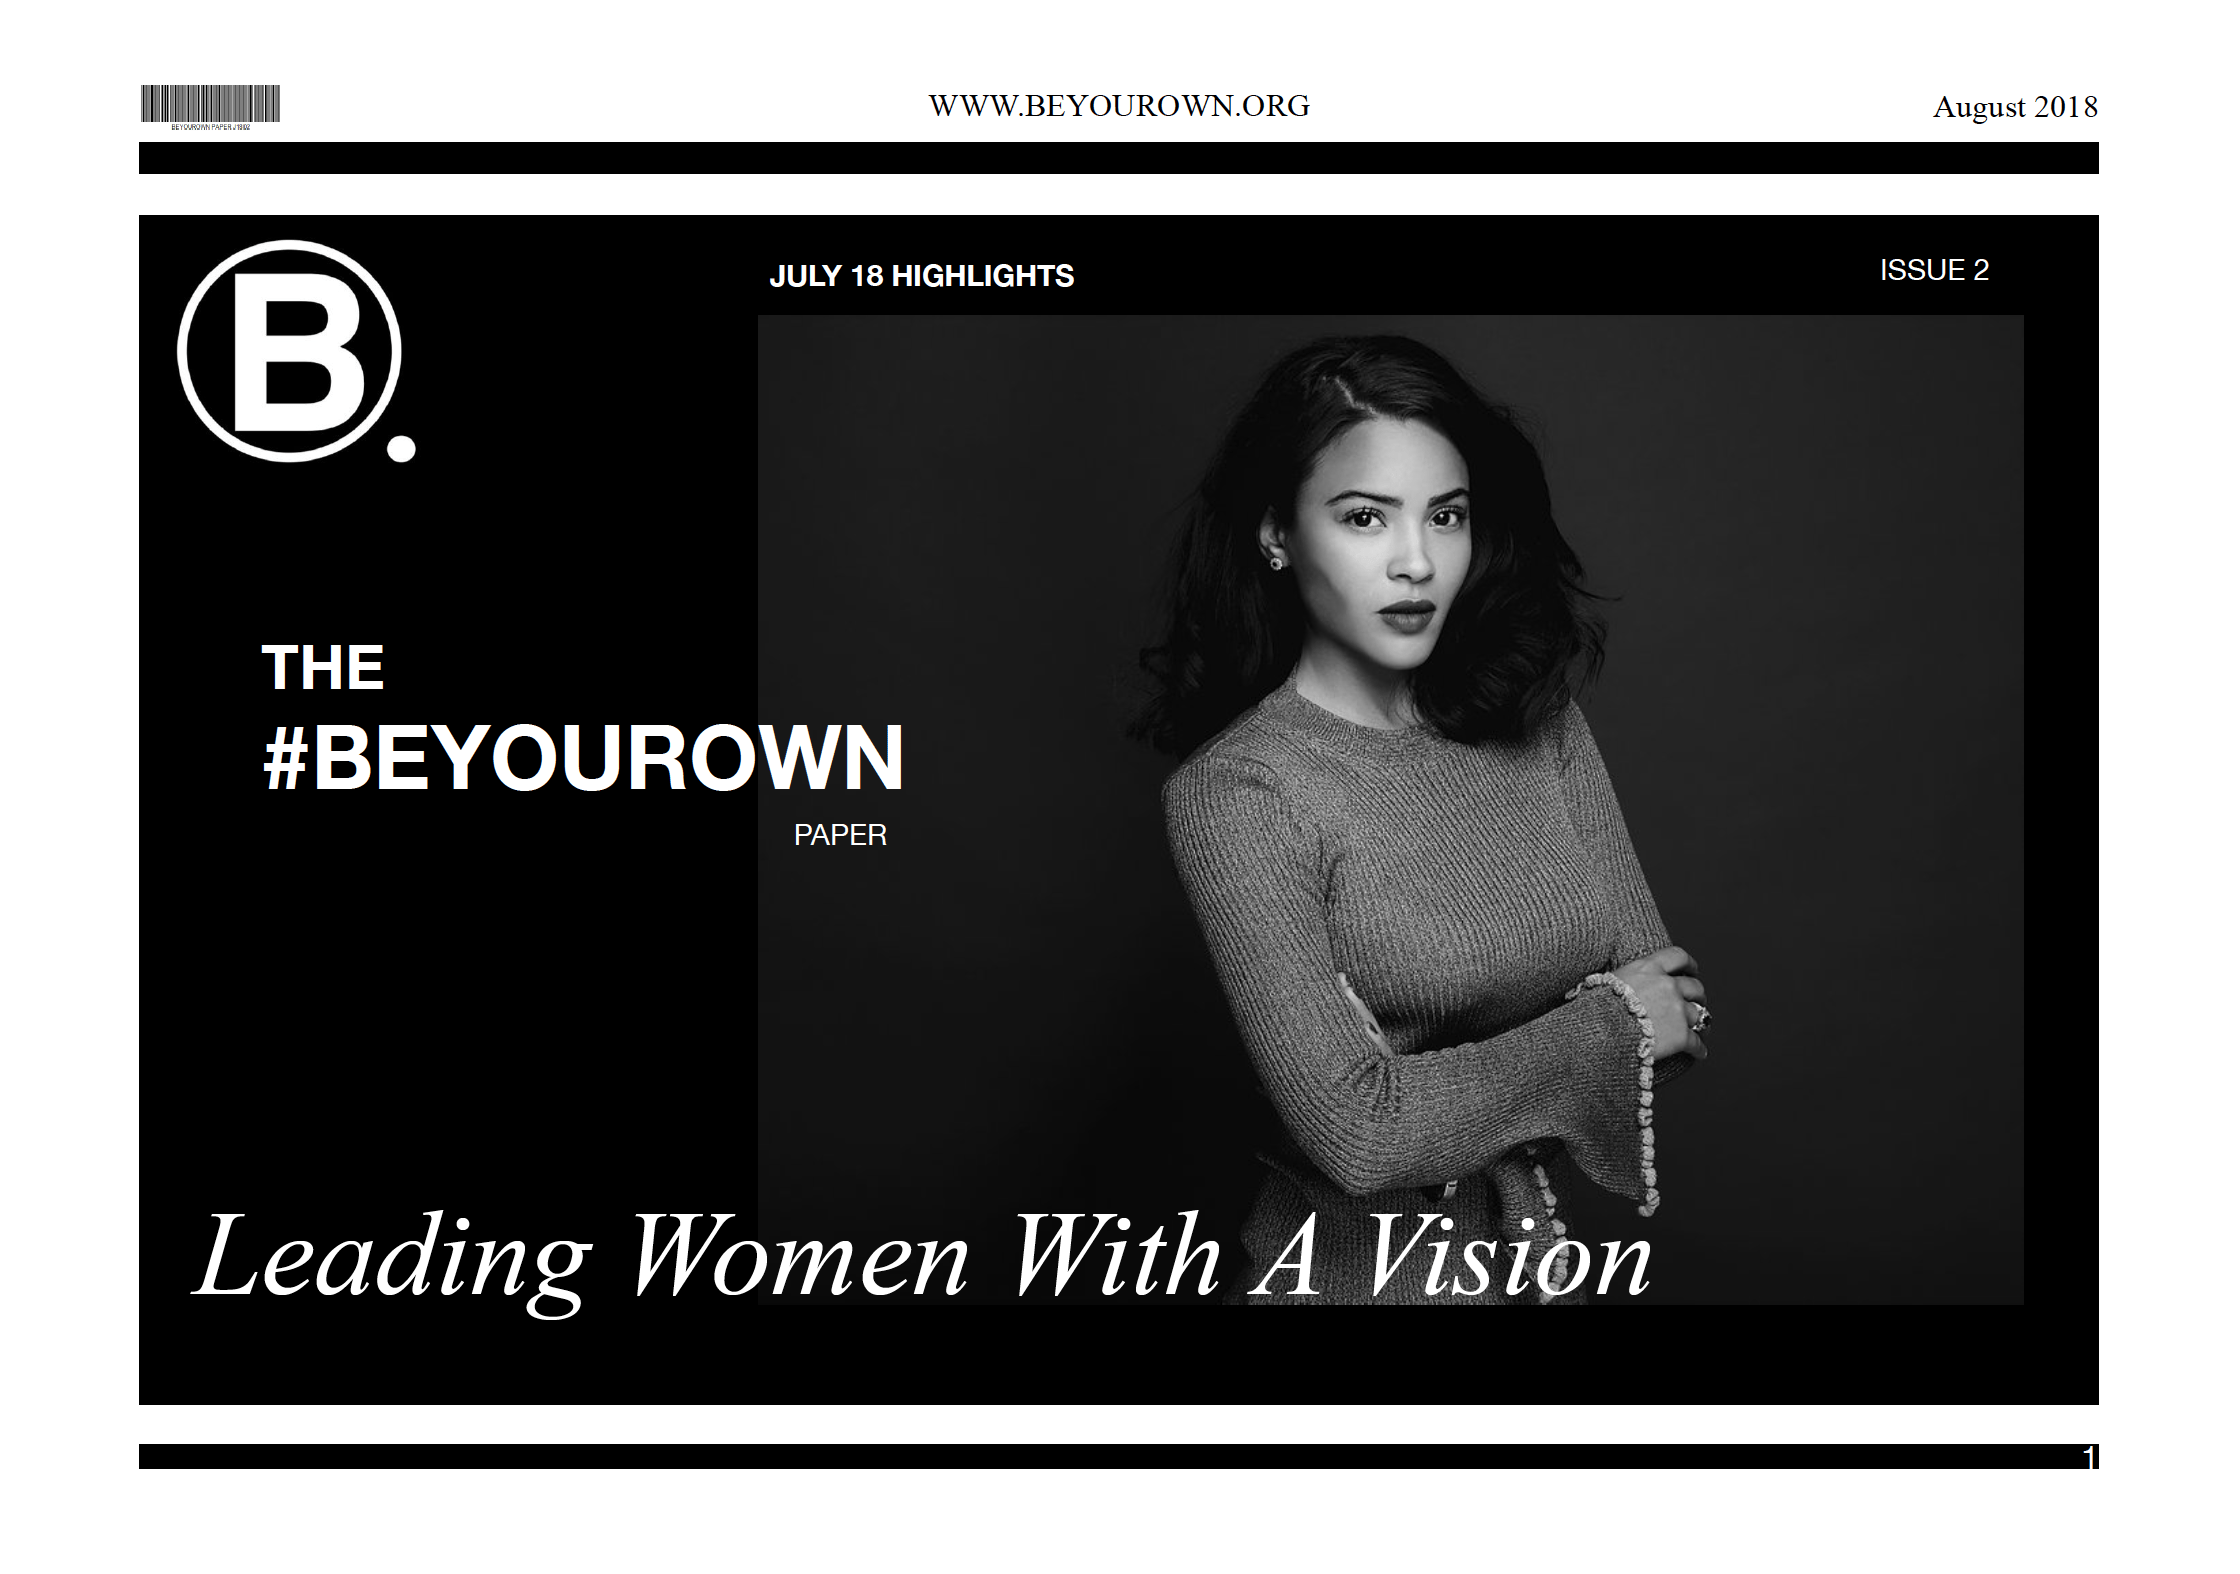 THE #BEYOUROWN PAPER